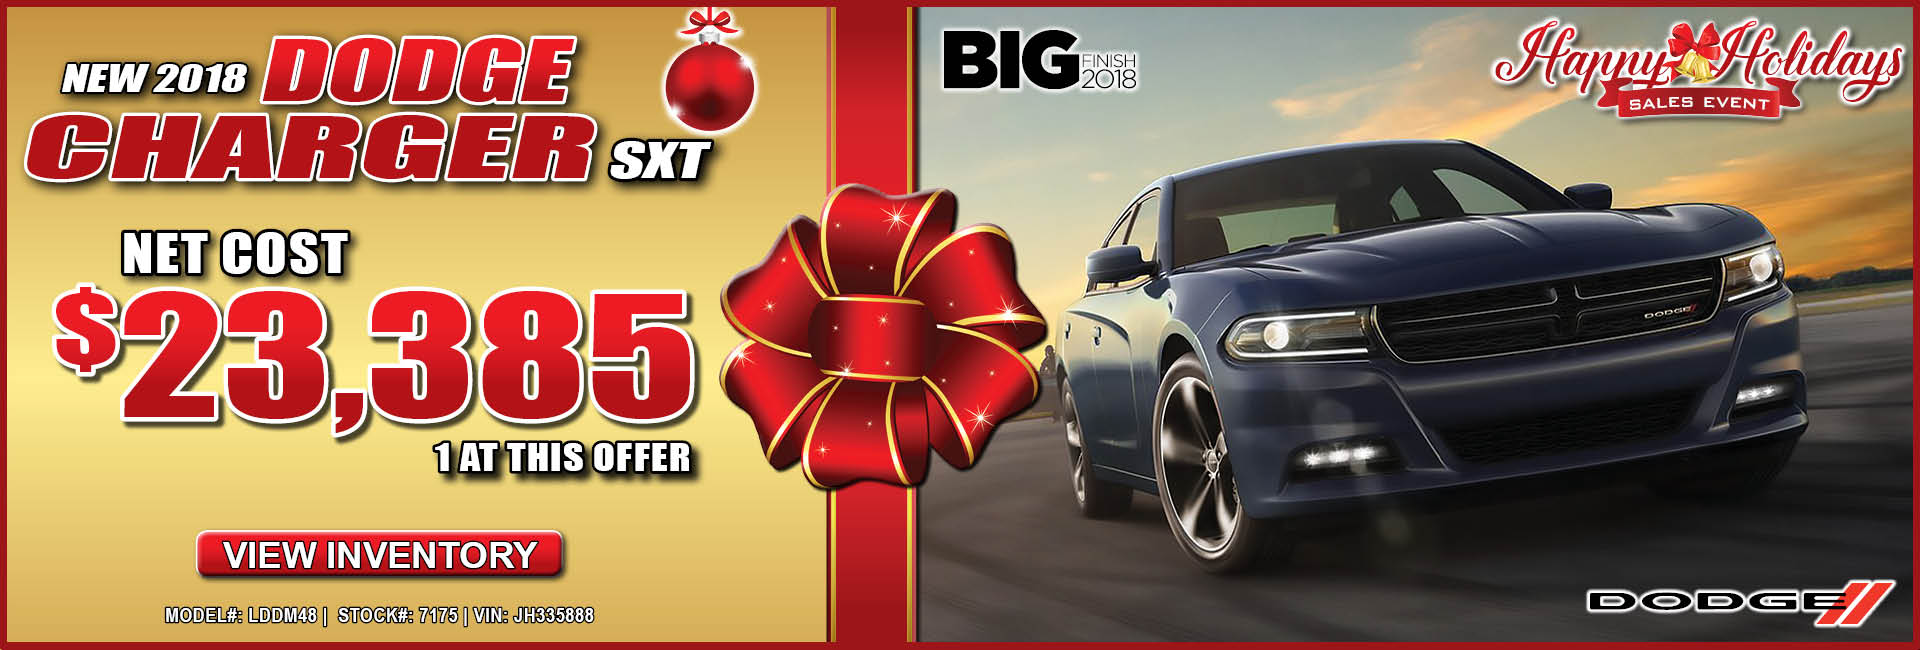 Dodge Charger $23,385